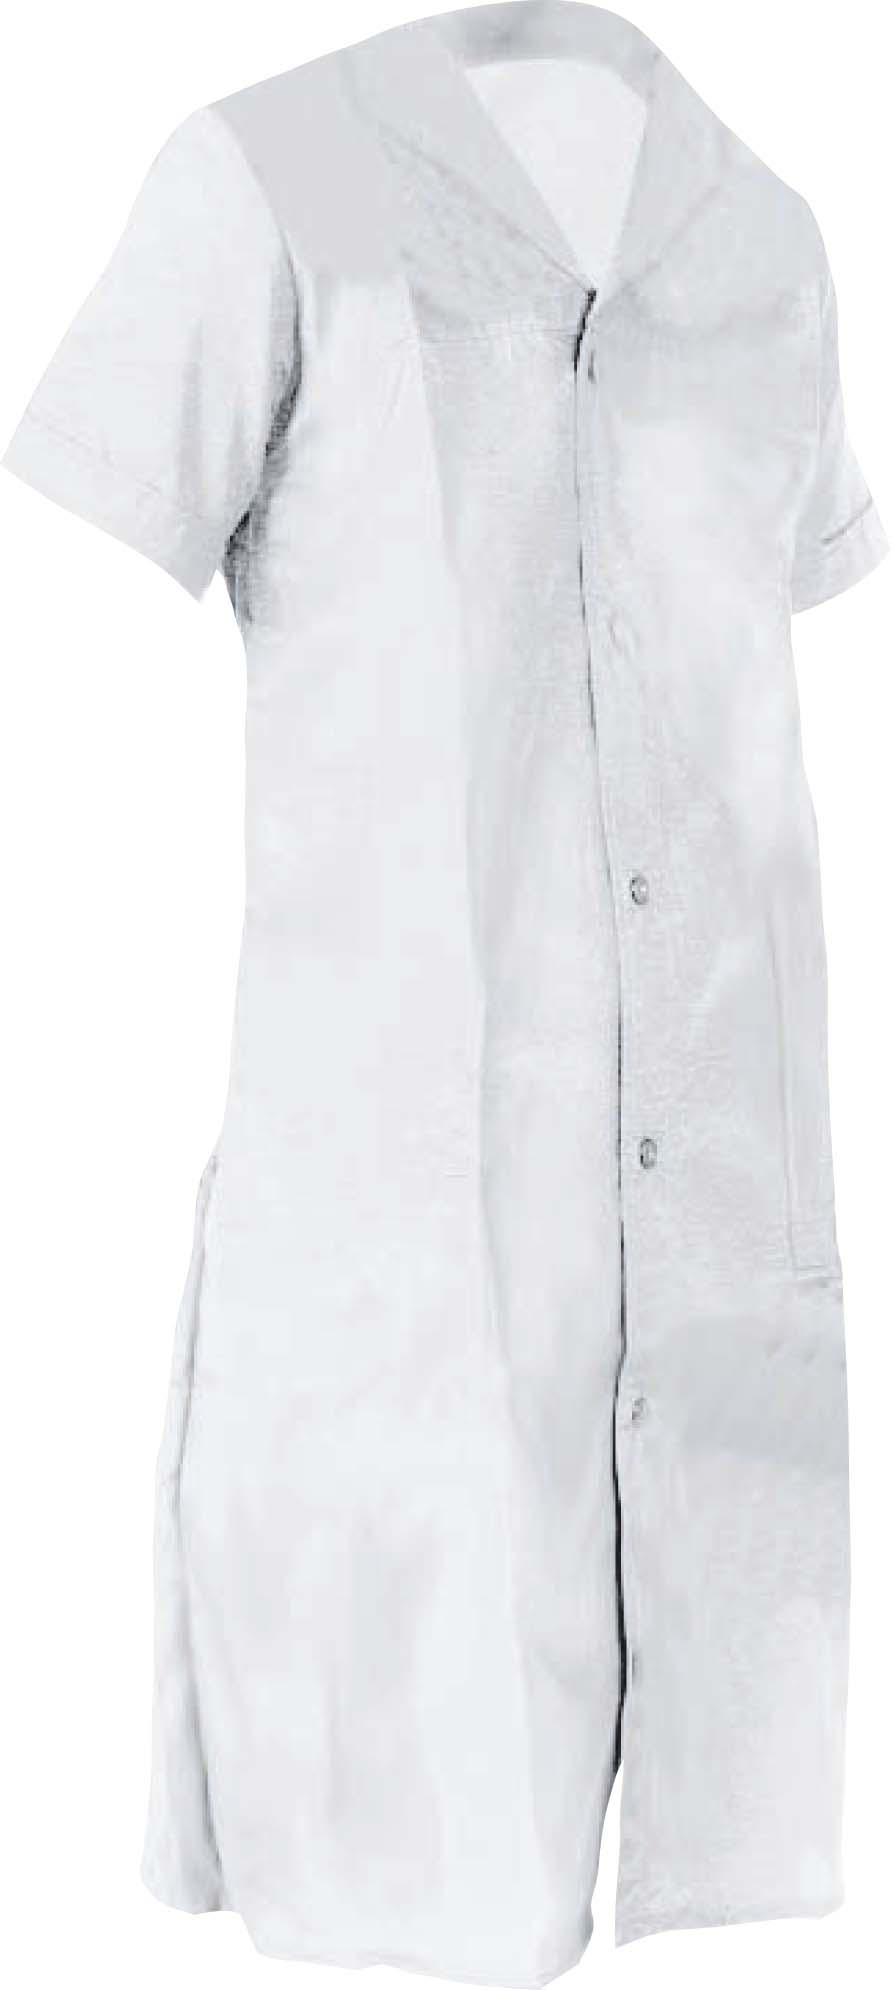 Ladies Housekeeping 1Pc - White Xxx - Large UNI5046